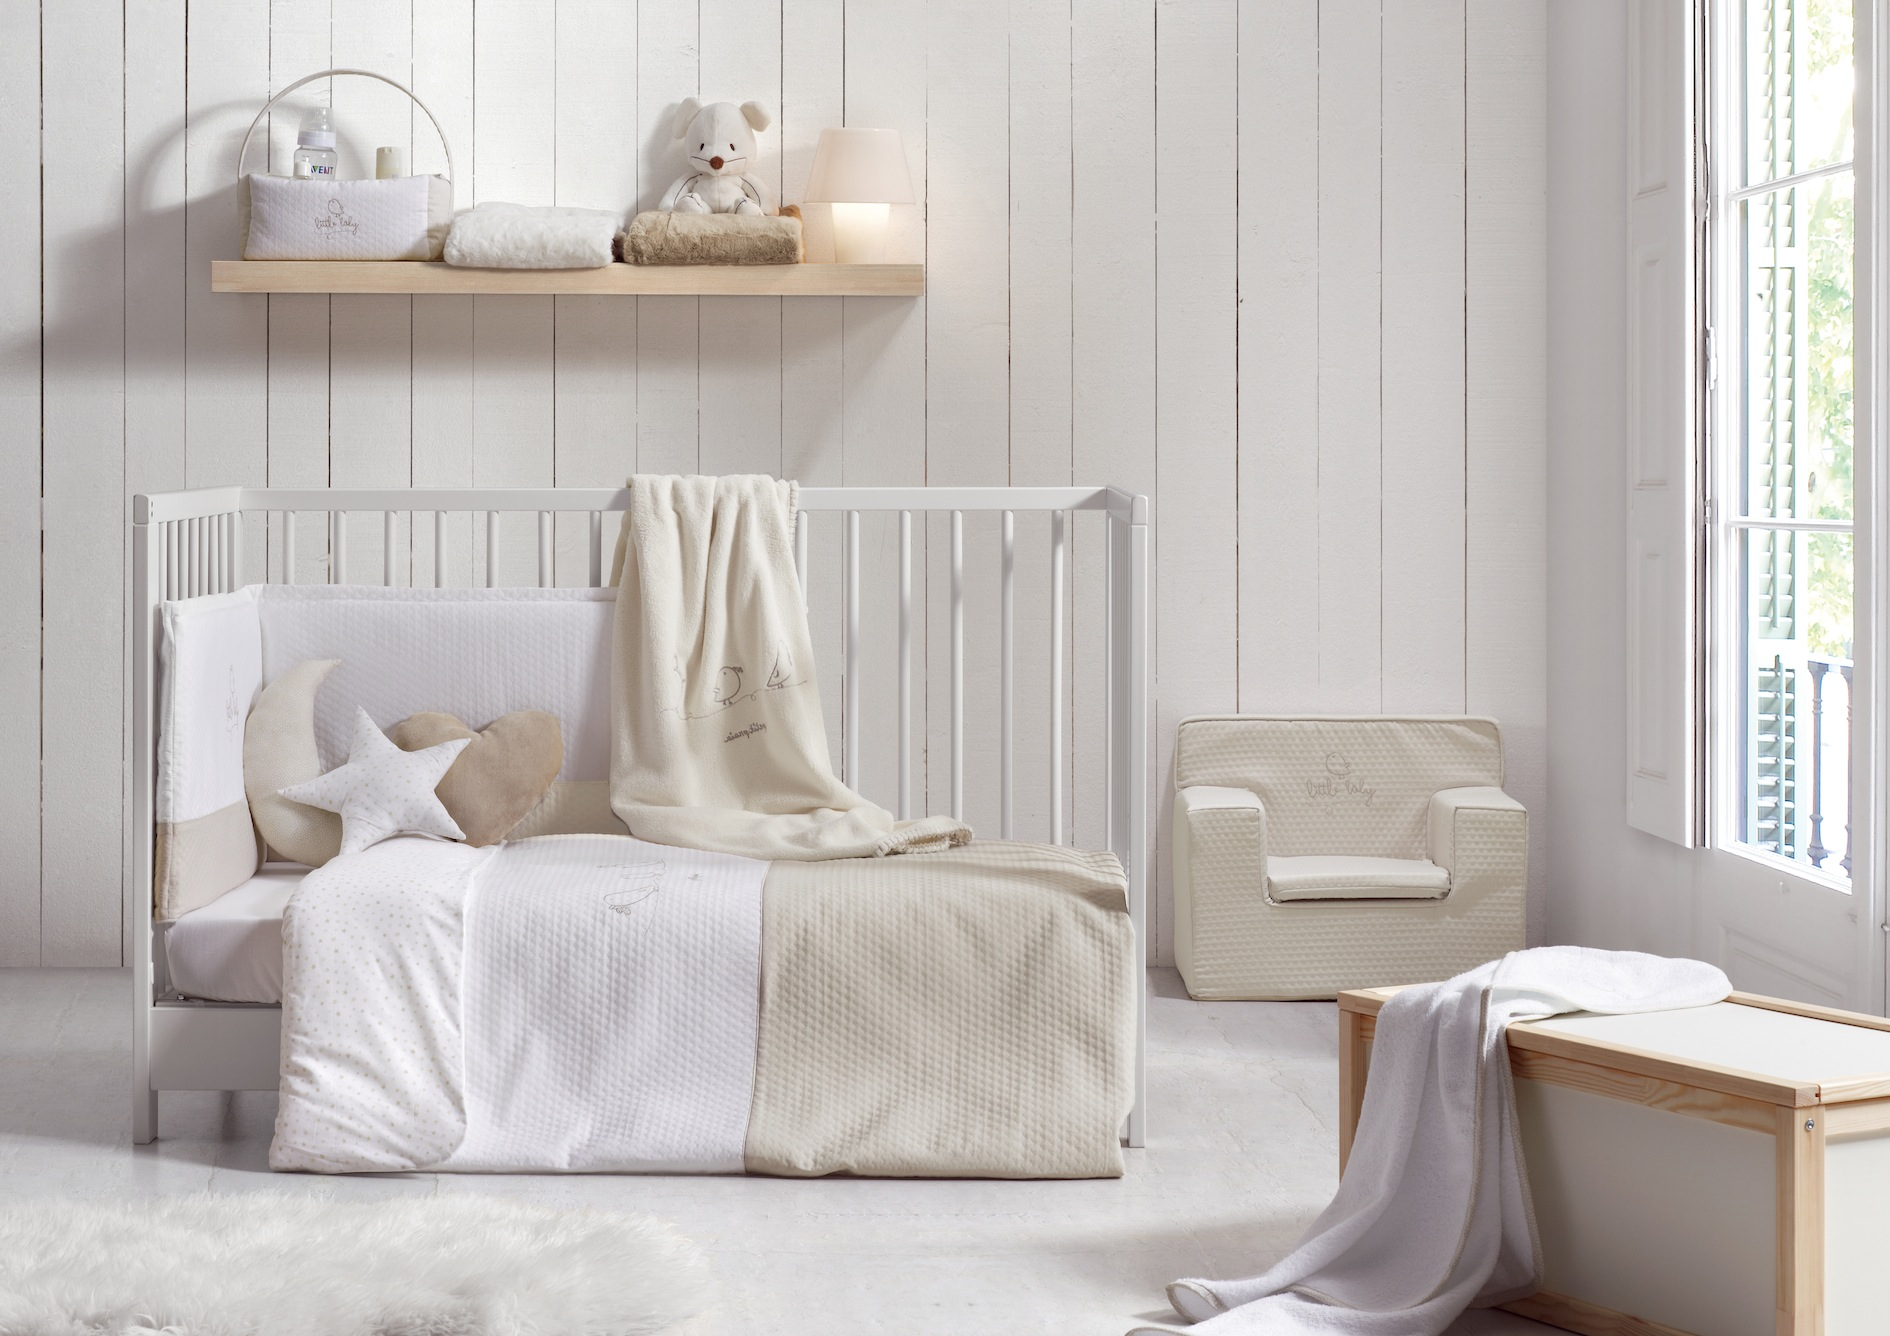 10 ideas para decorar la habitaci n del beb productos - Ideas para decorar dormitorio infantil ...